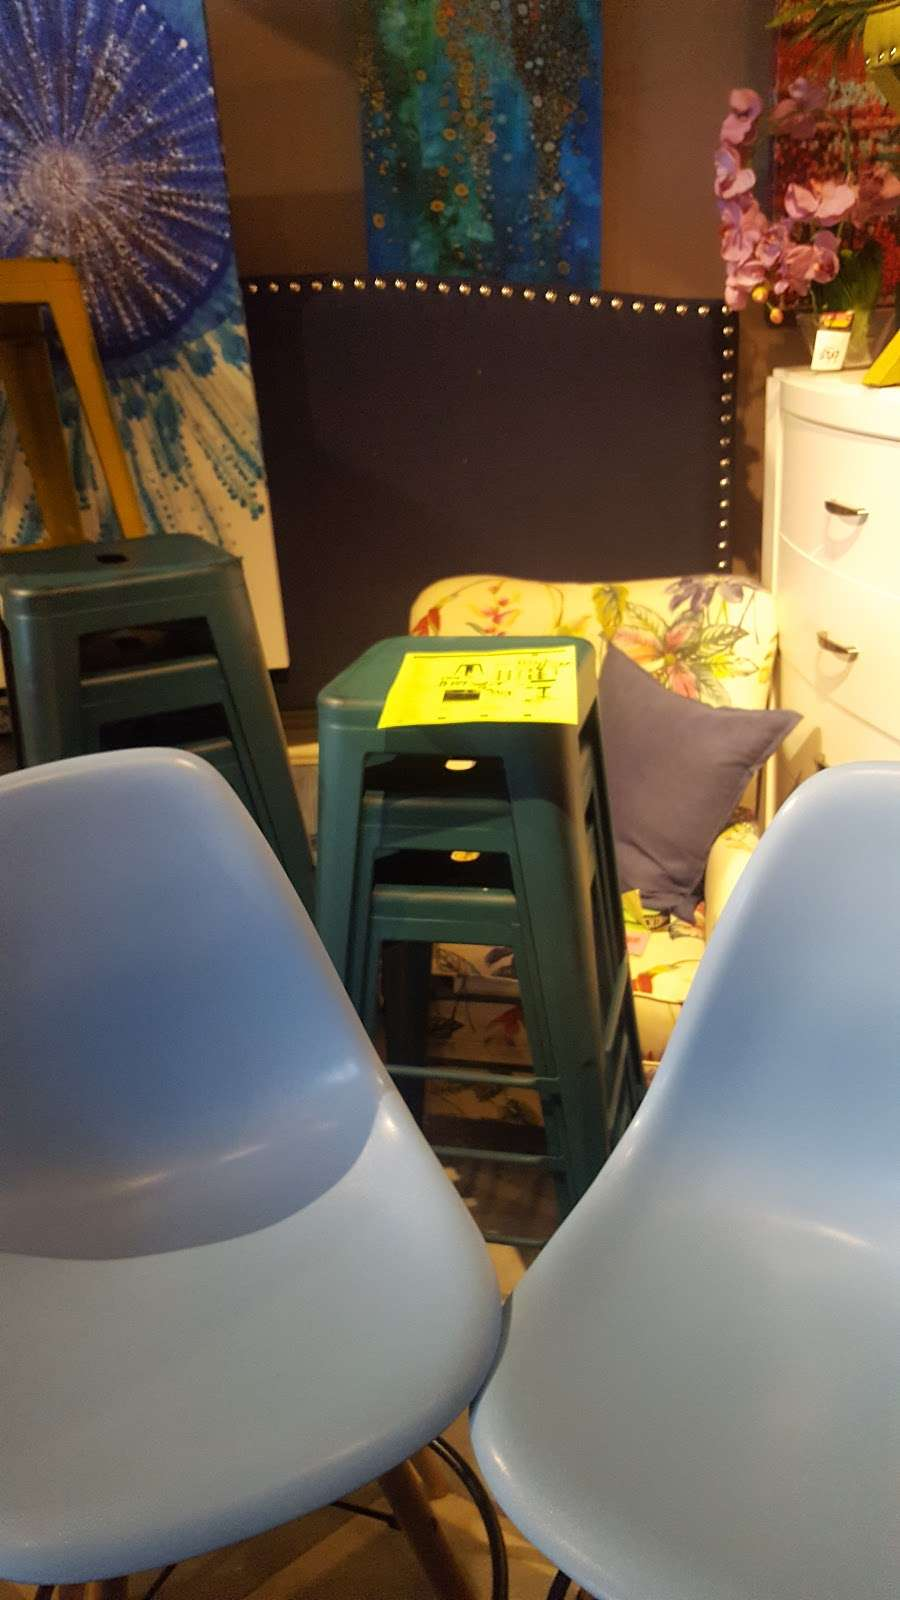 Salvage Plus - furniture store  | Photo 9 of 10 | Address: 815 Willowbrook Dr, Schererville, IN 46375, USA | Phone: (219) 515-2522